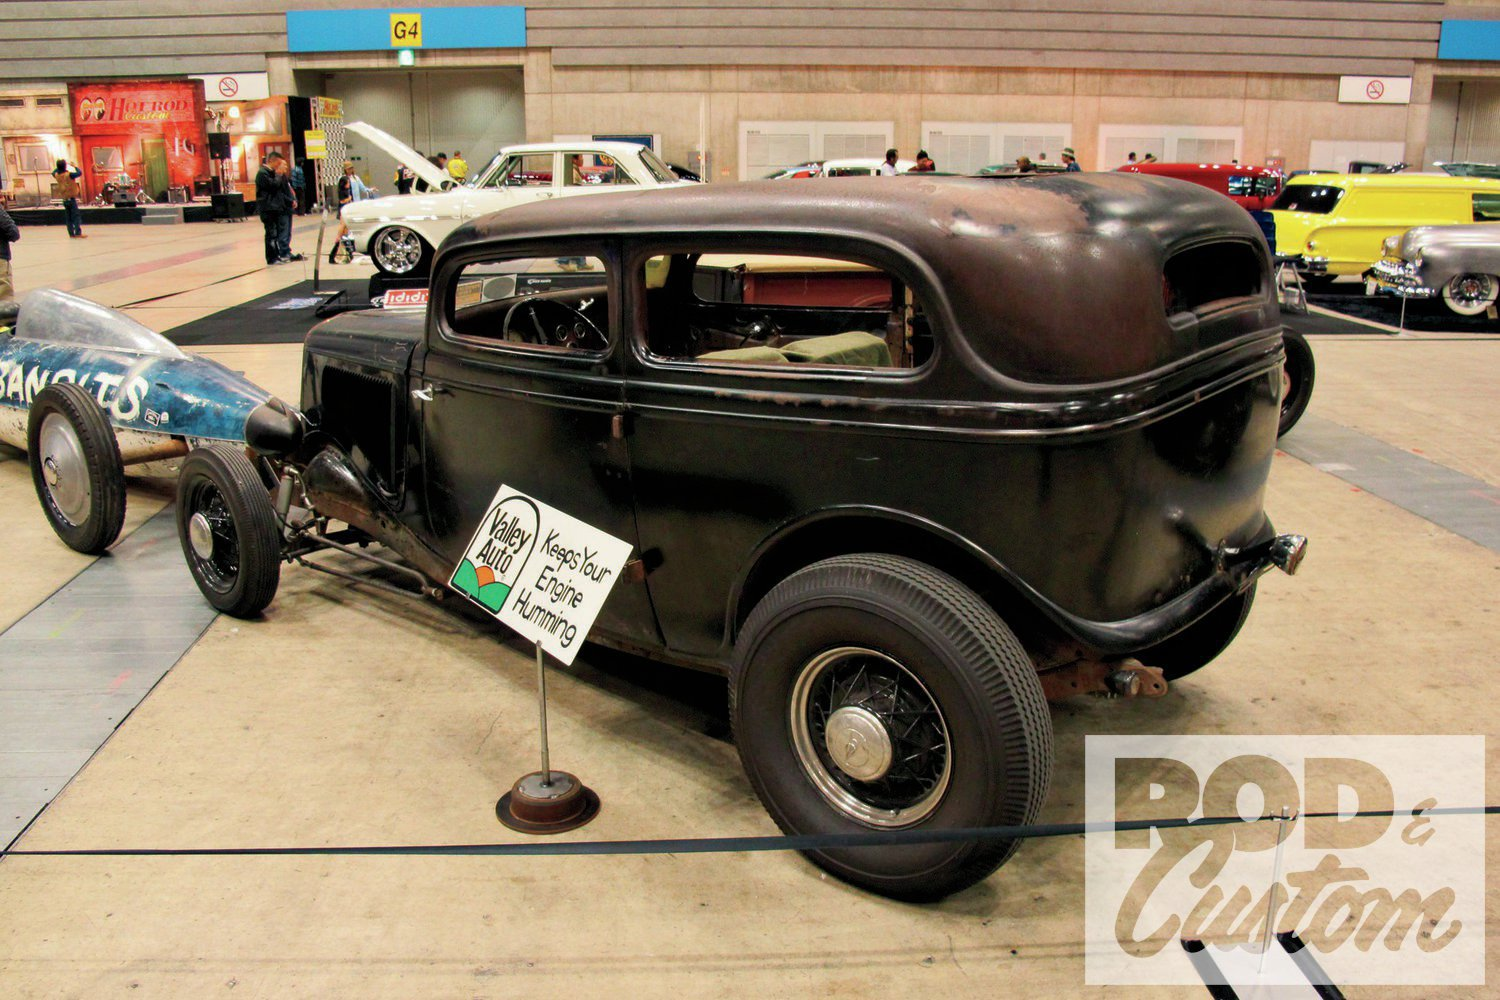 Rod & Custom Magazine Pick: Takuro Yoneuchi/Valley Auto '34 Ford Tudor. Trophy by Dennis McPhail; lettering by Wildman (pictured).